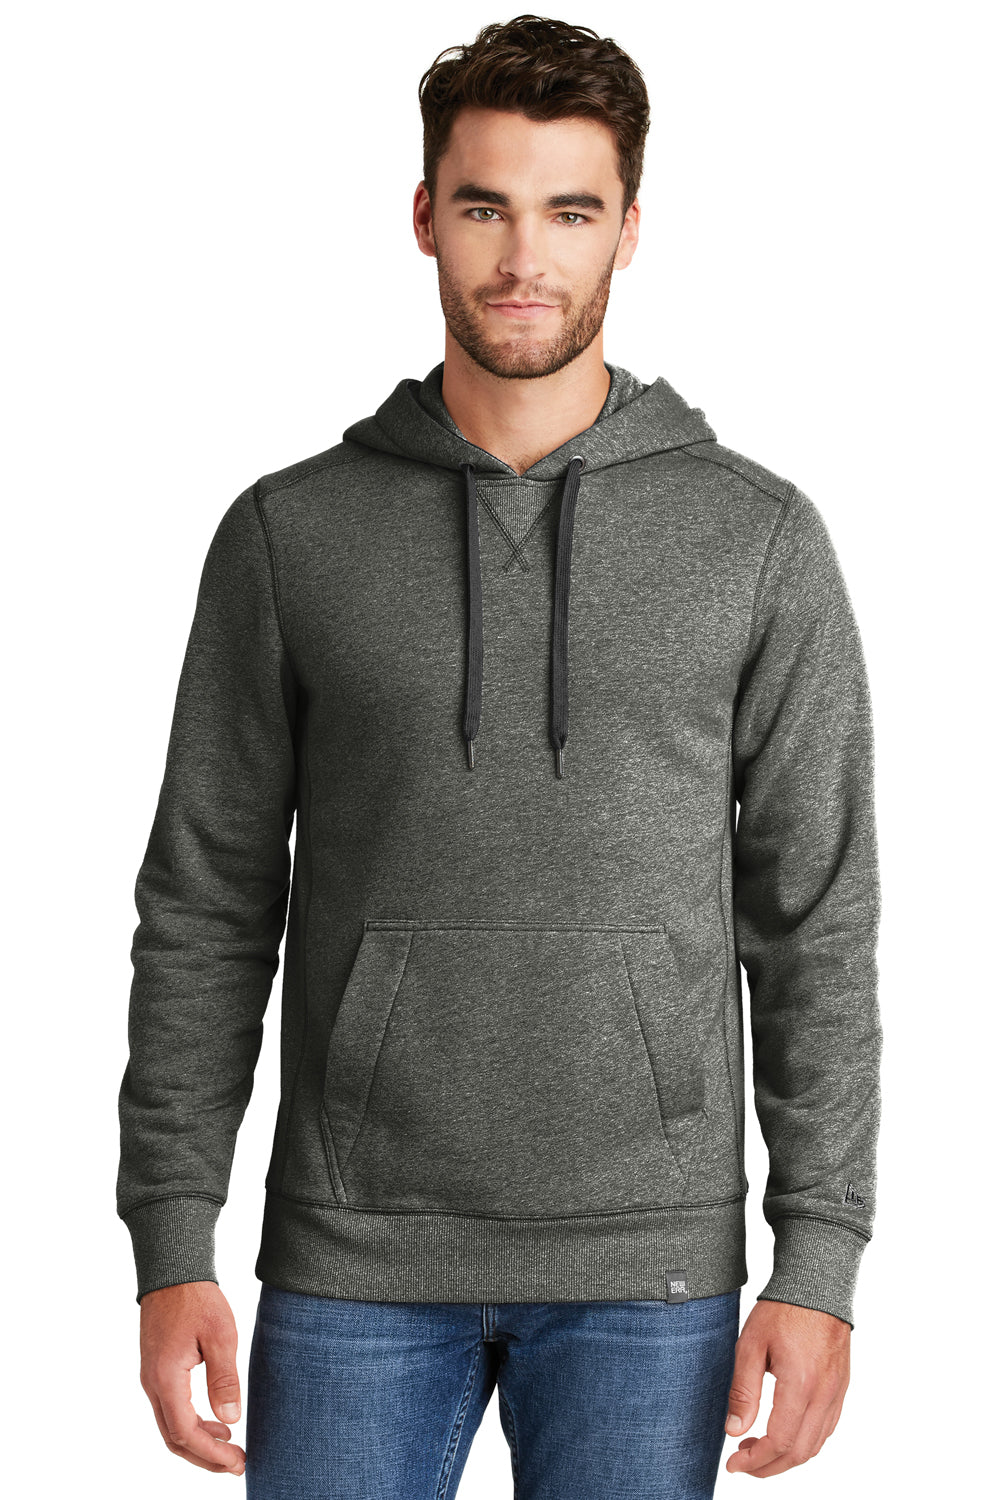 New Era NEA500 Mens Sueded French Terry Hooded Sweatshirt Hoodie Black Twist Front